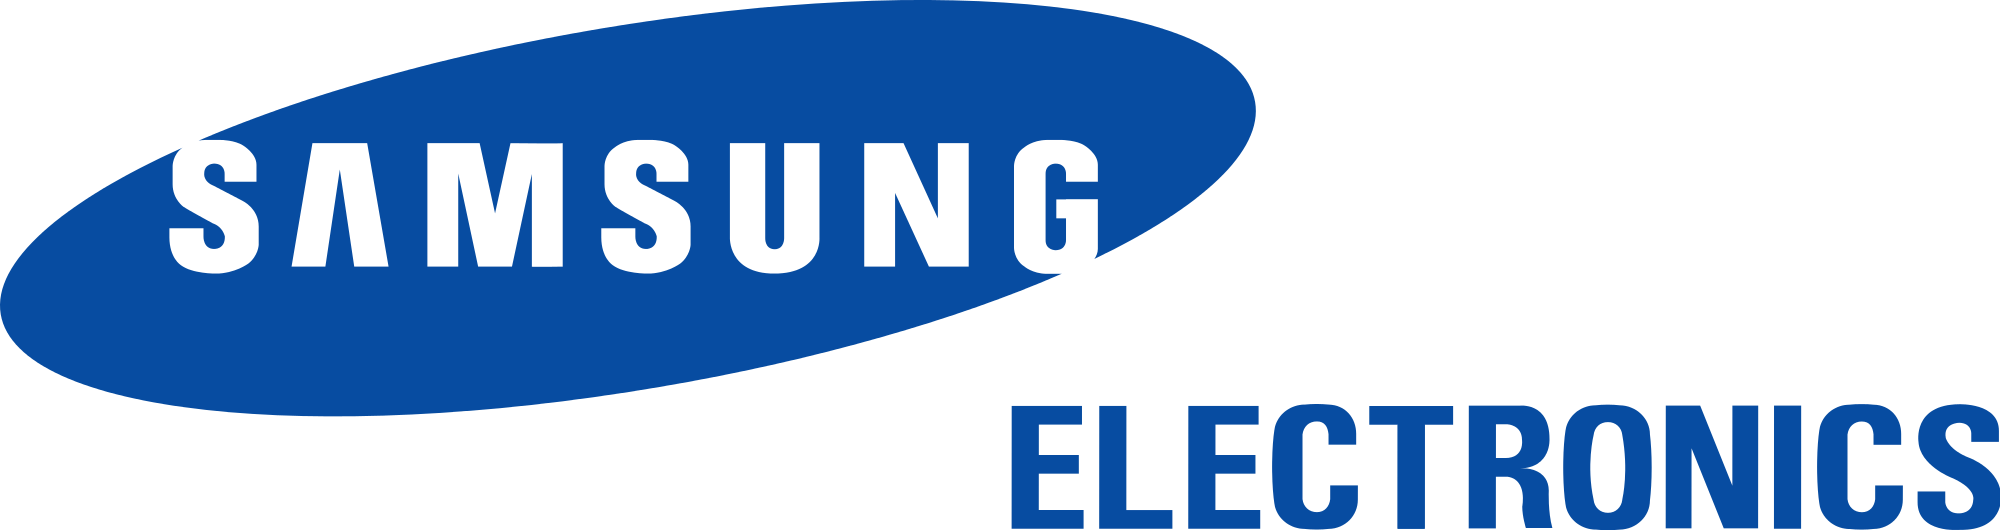 Samsung_Electronics_logo_(english)_svg